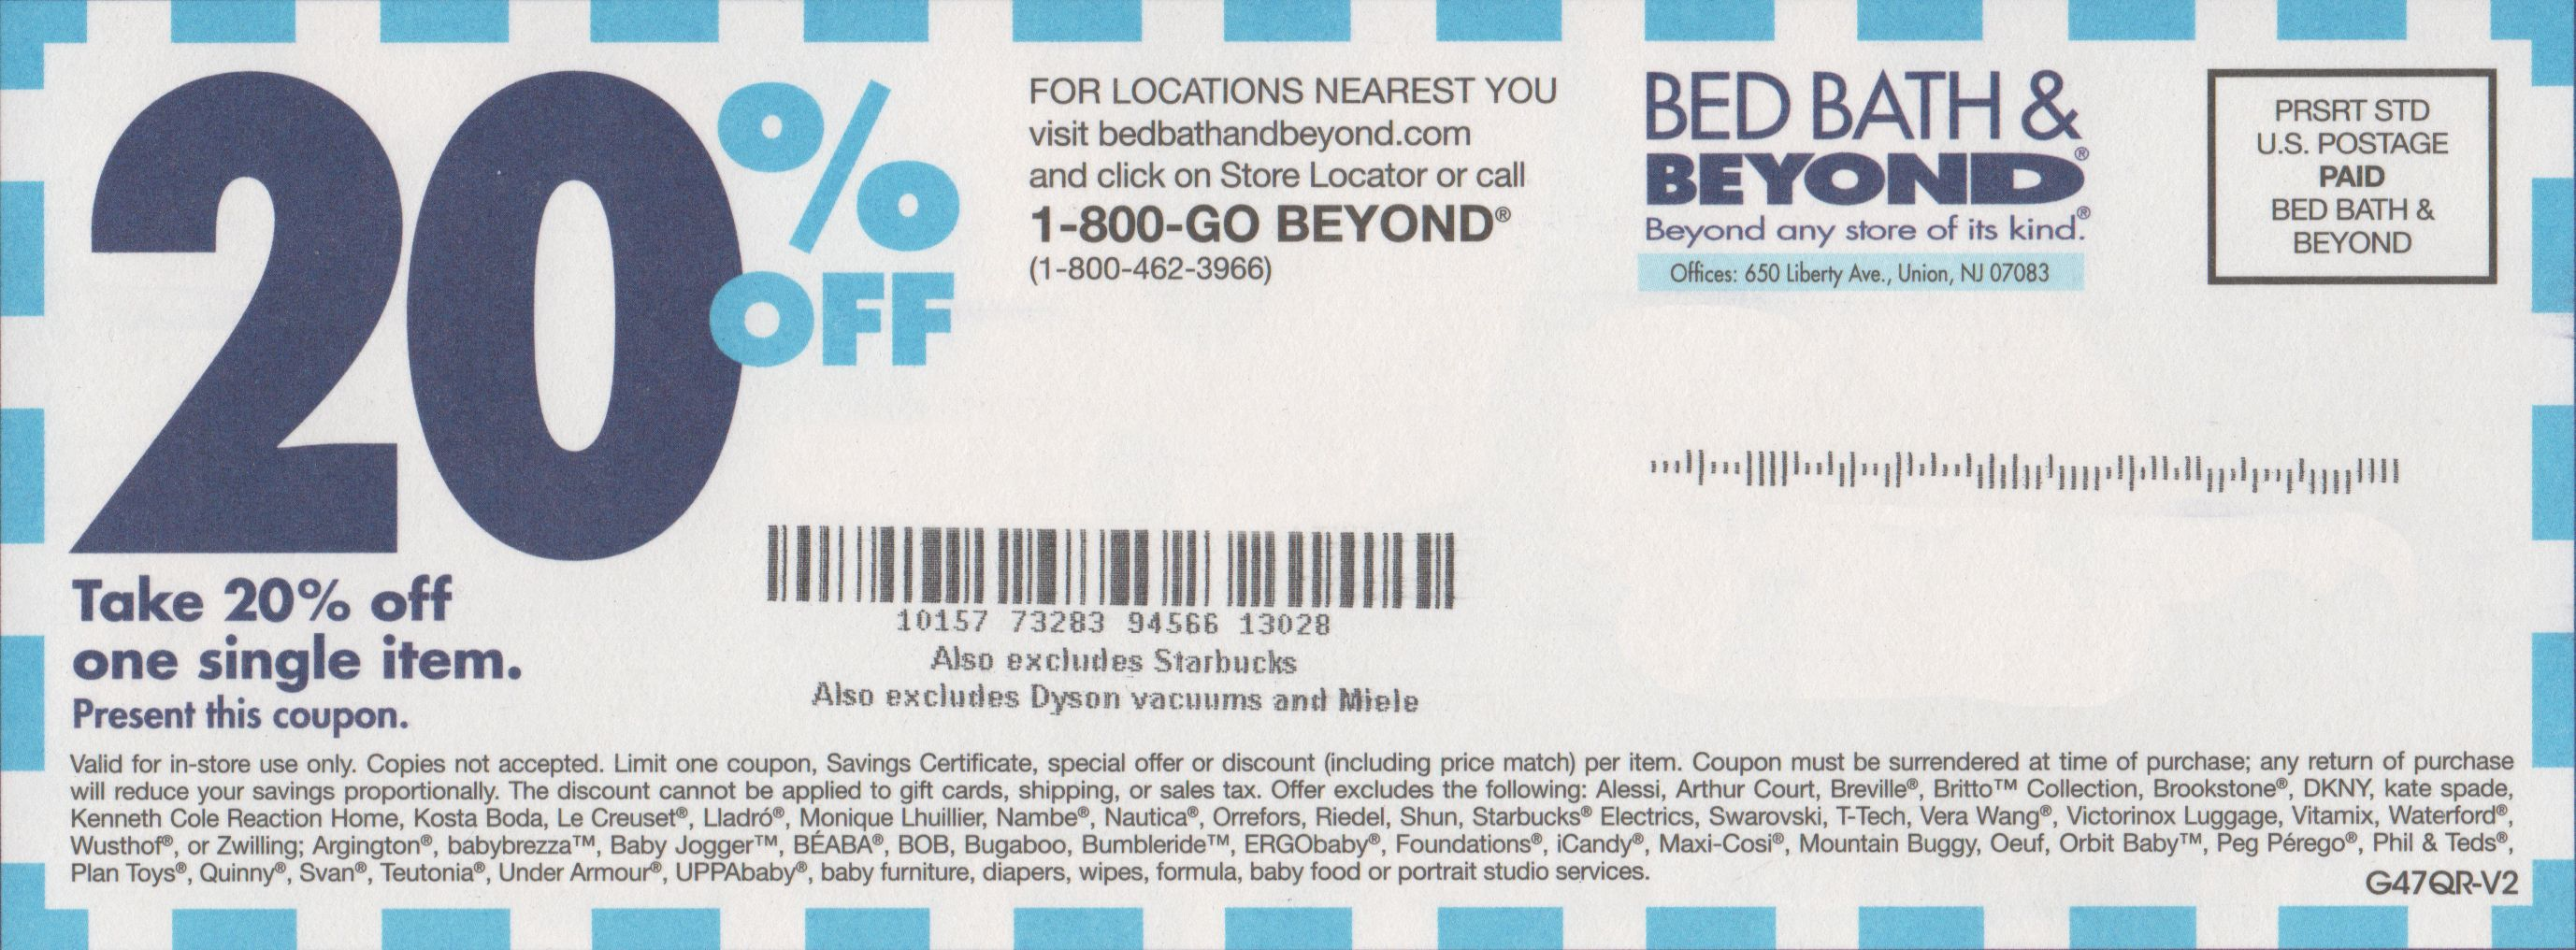 Bed bath beyond printable coupon 20 percent off in store